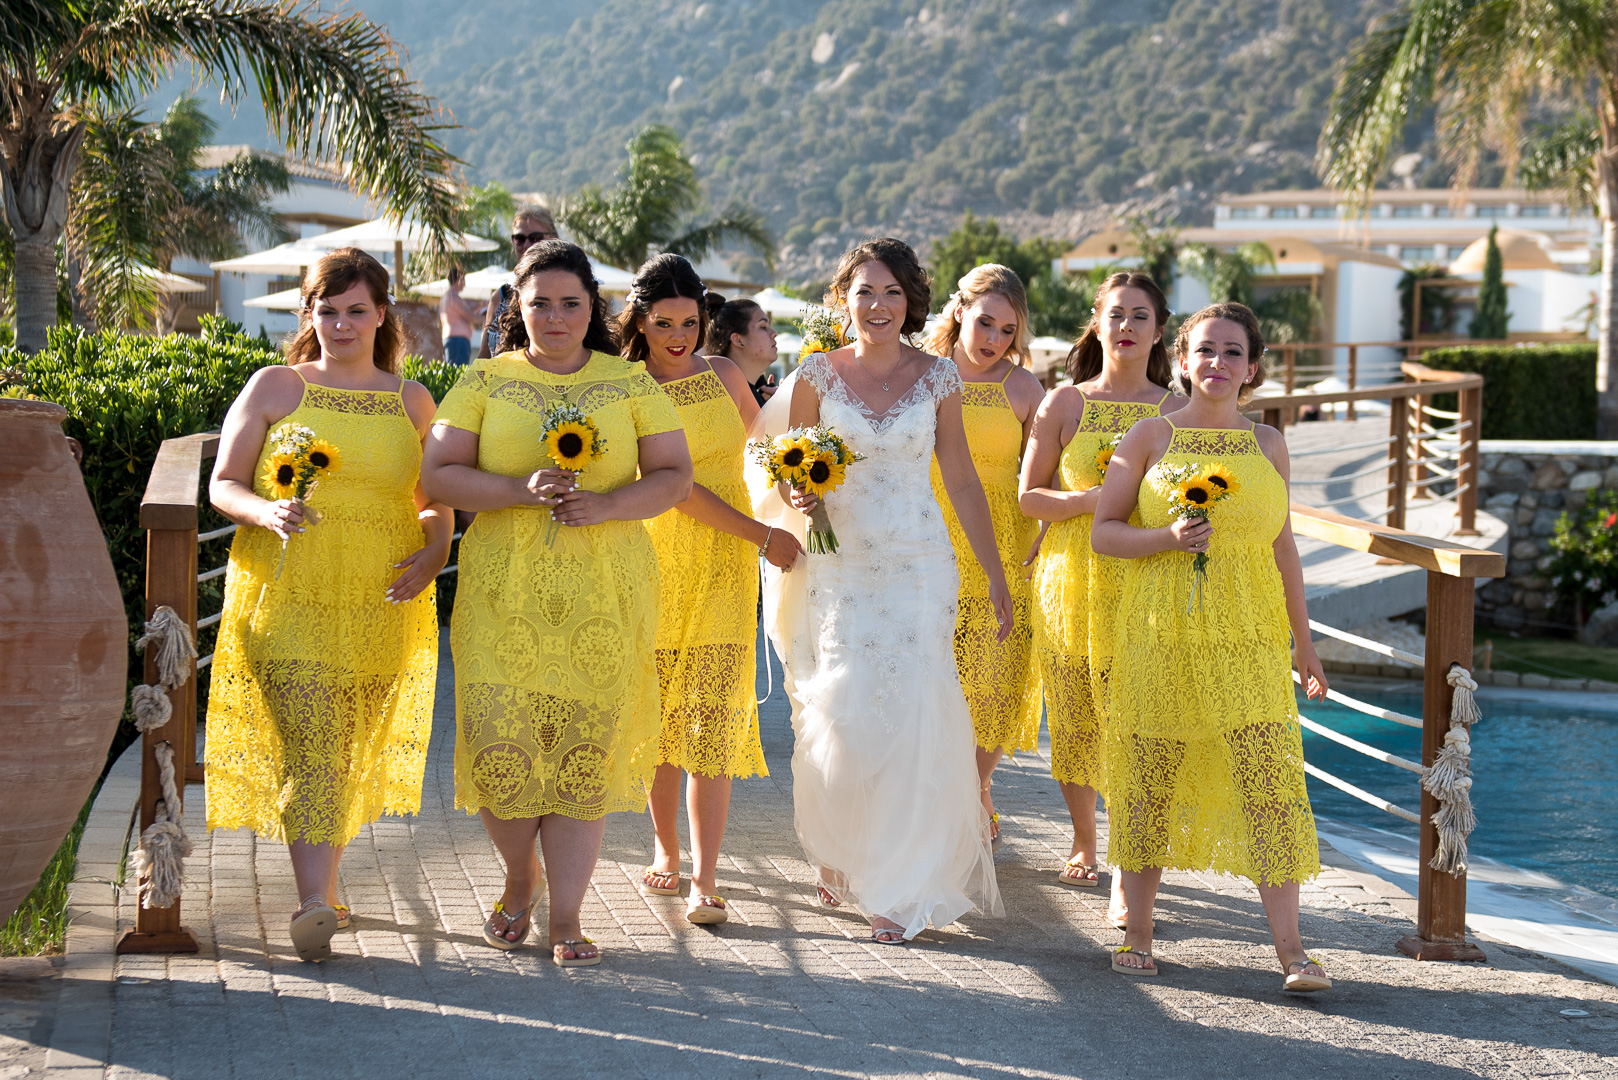 Amazing photo of wedding in Greece